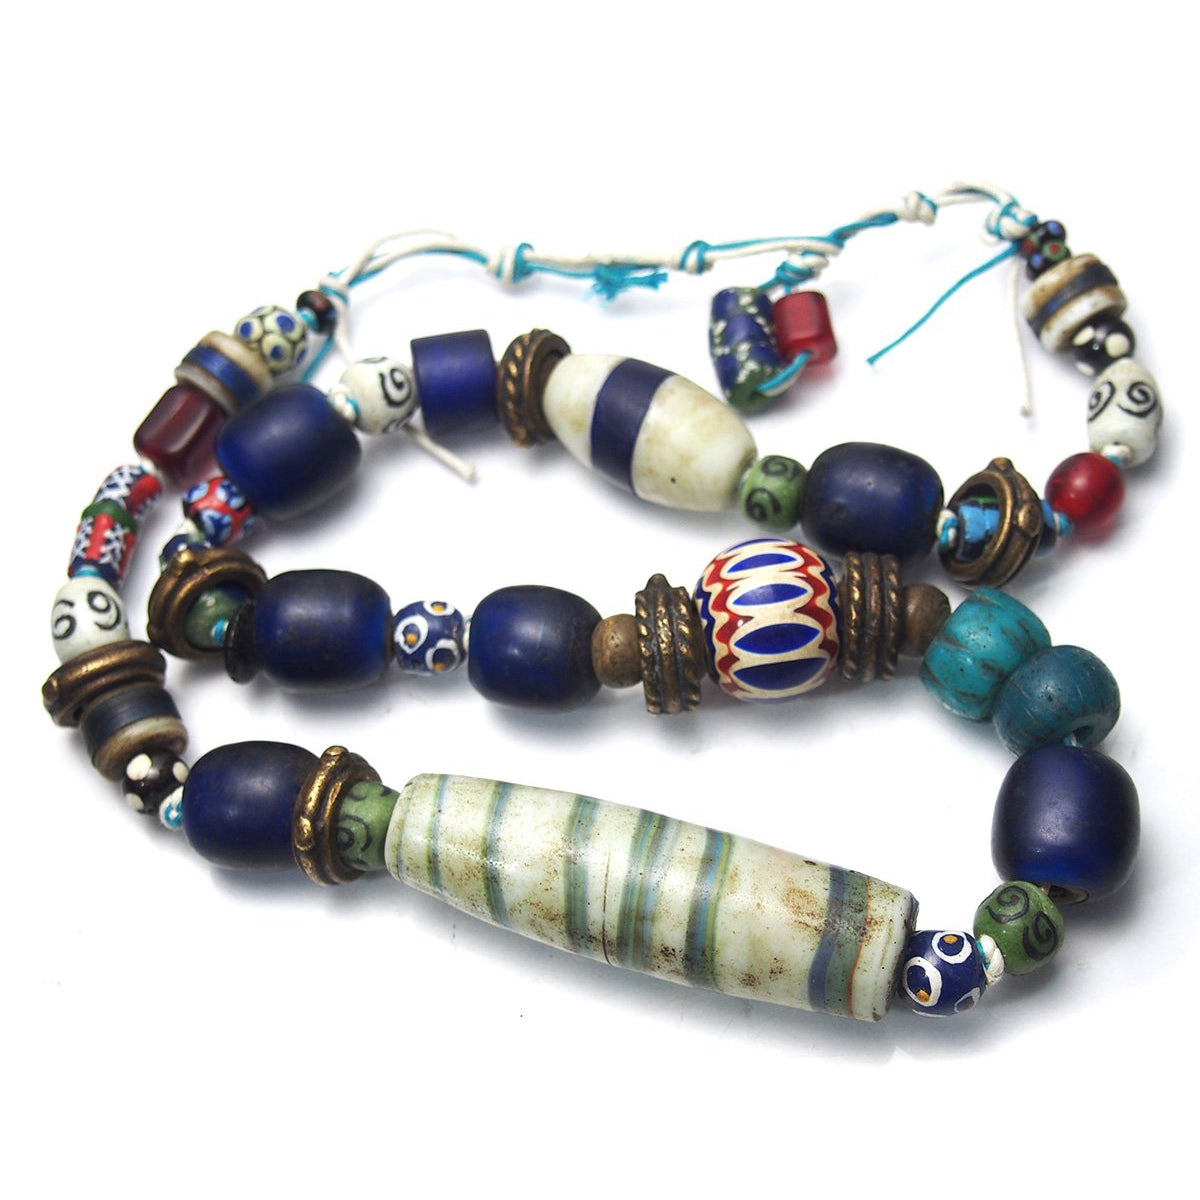 18th-19th Century Indian Naga Heirloom Trade Beads